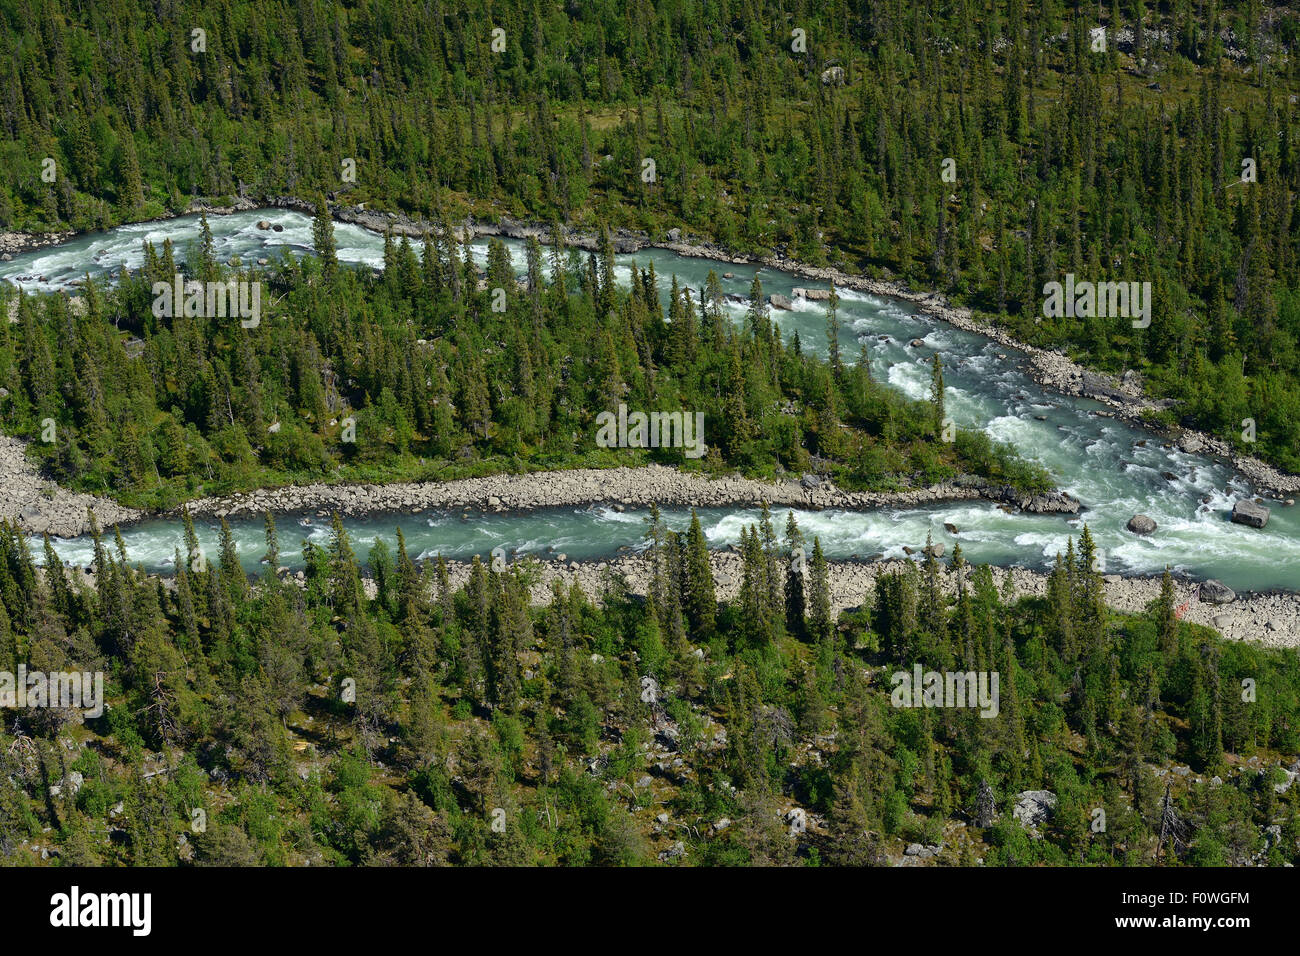 Aerial view of river flowing through taiga boreal forest, Sjaunja ...